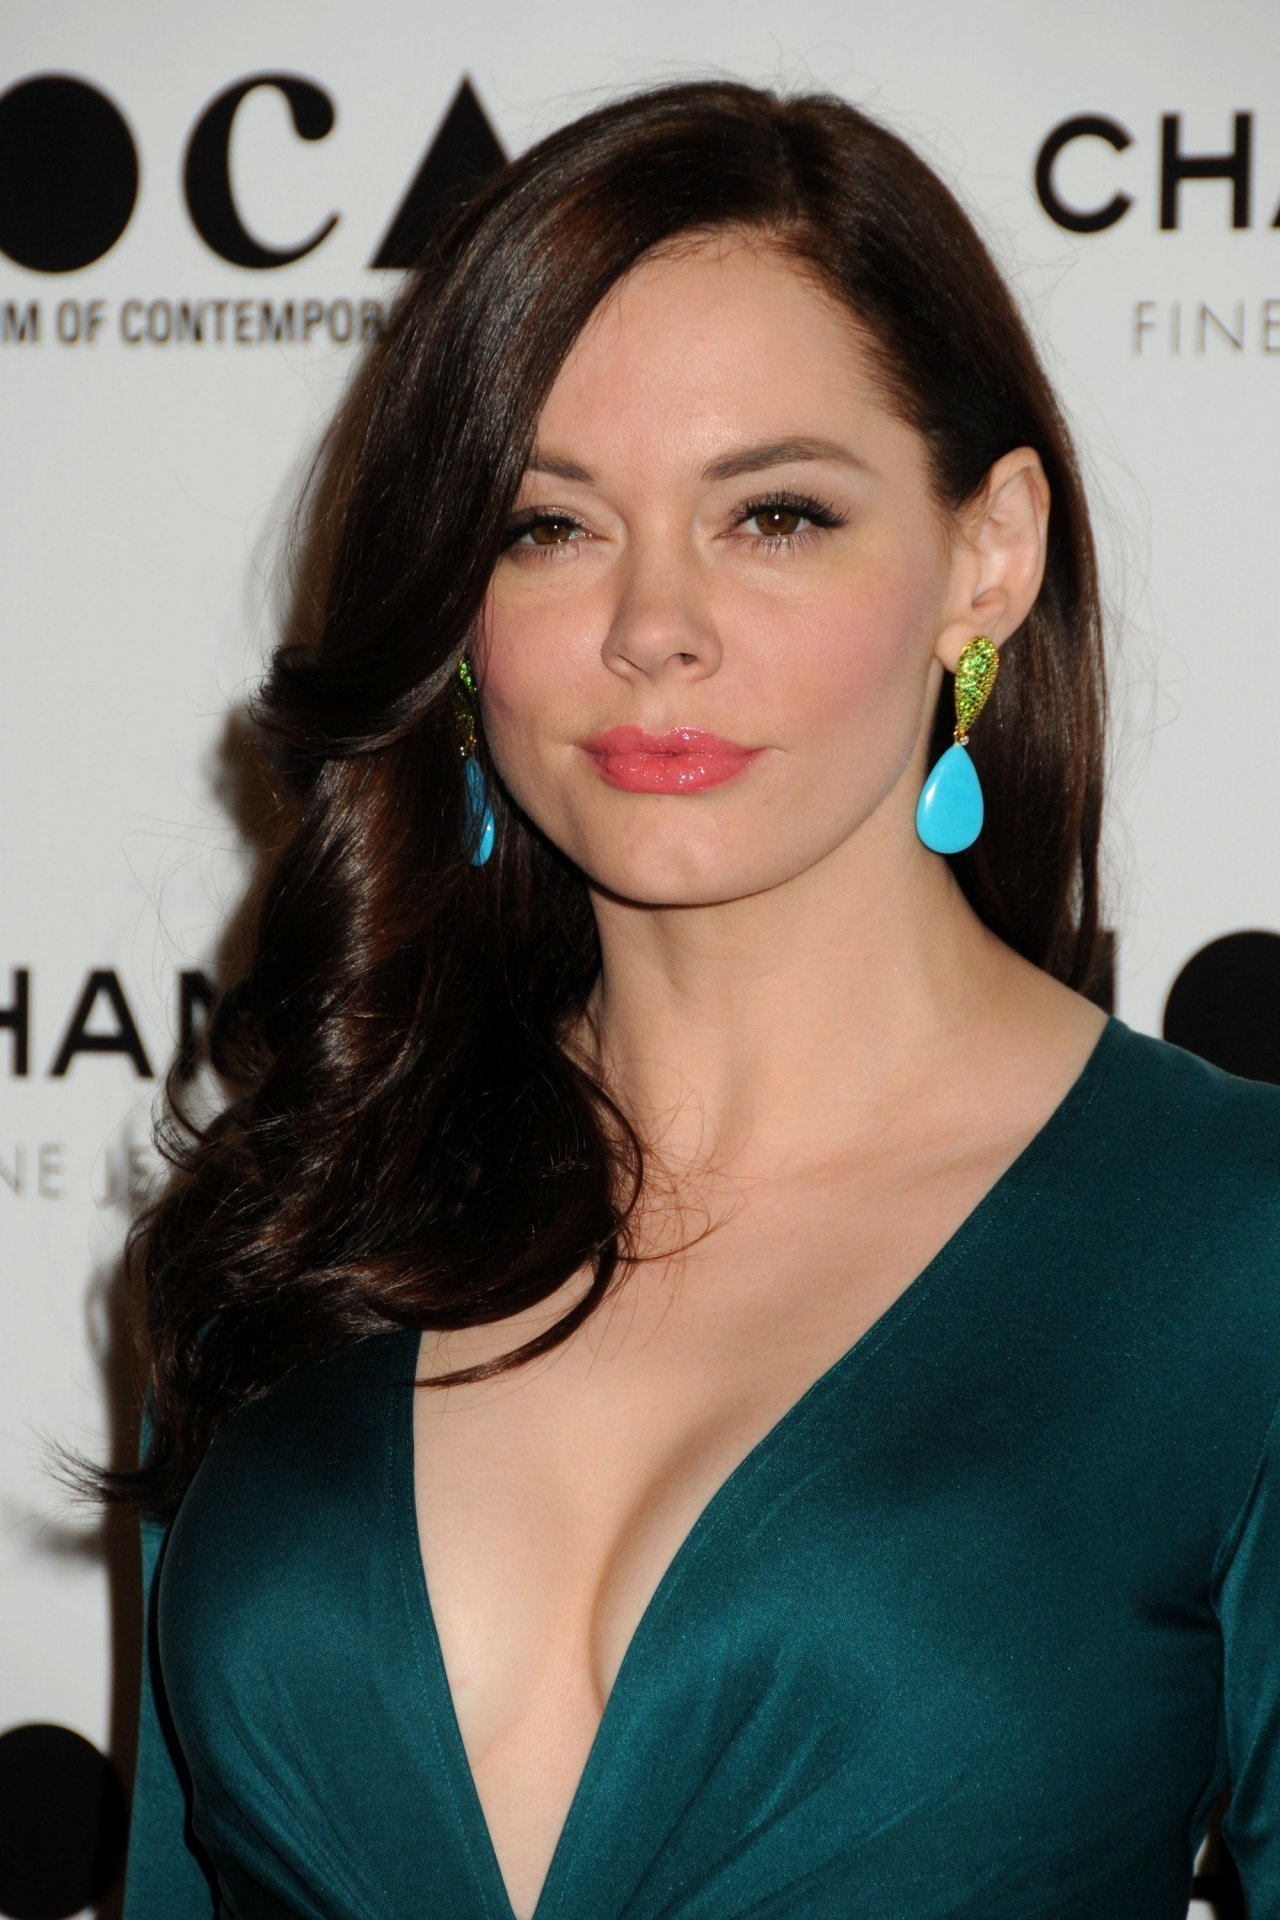 rose mcgowan pictures - photo #36